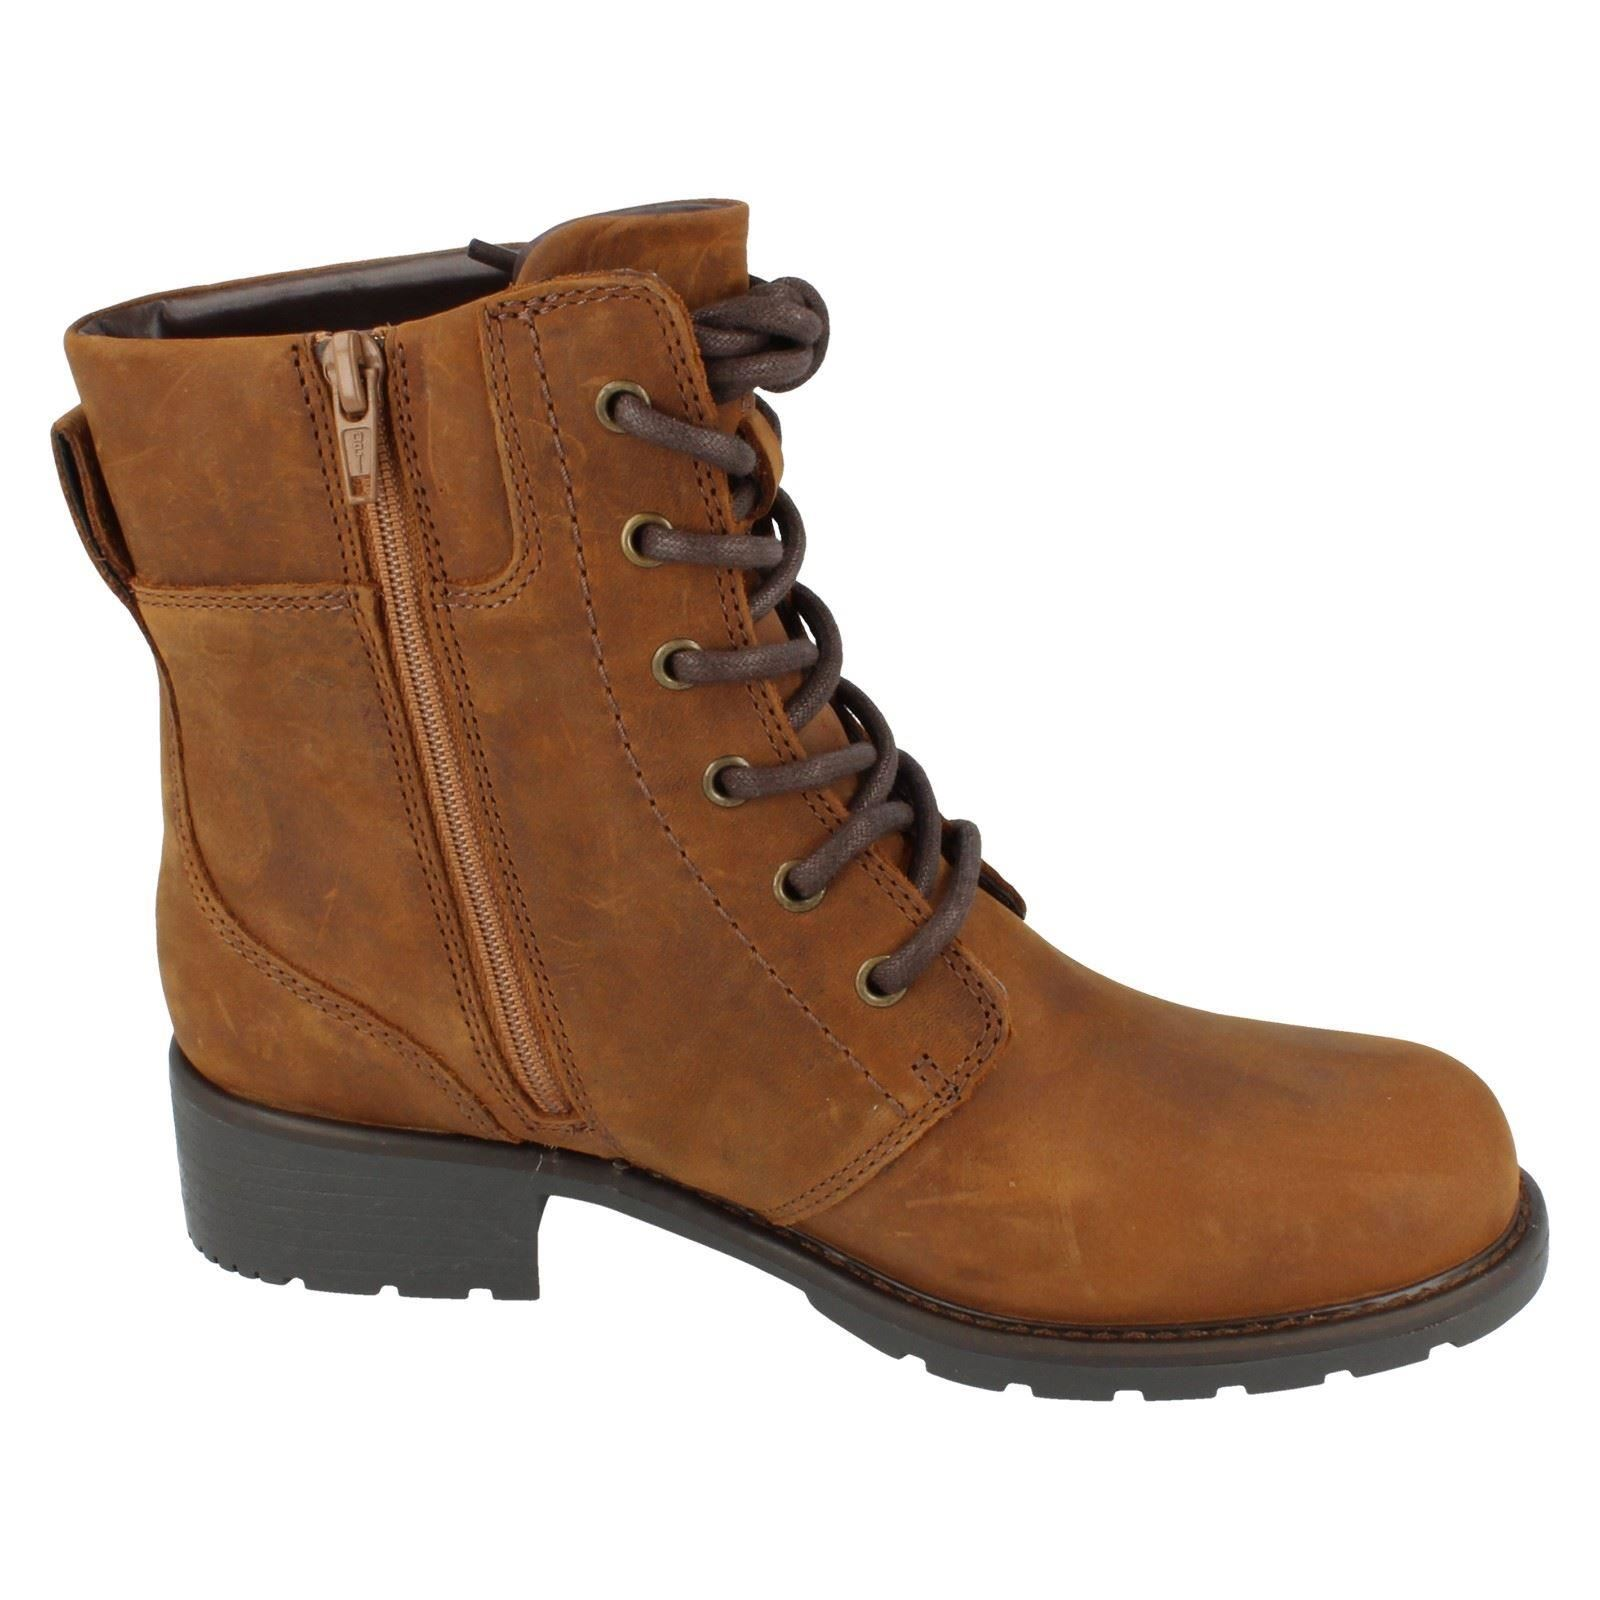 Ladies-Clarks-Casual-Lace-Up-Inside-Zip-Nubuck-Leather-Ankle-Boots-Orinoco-Spice thumbnail 16